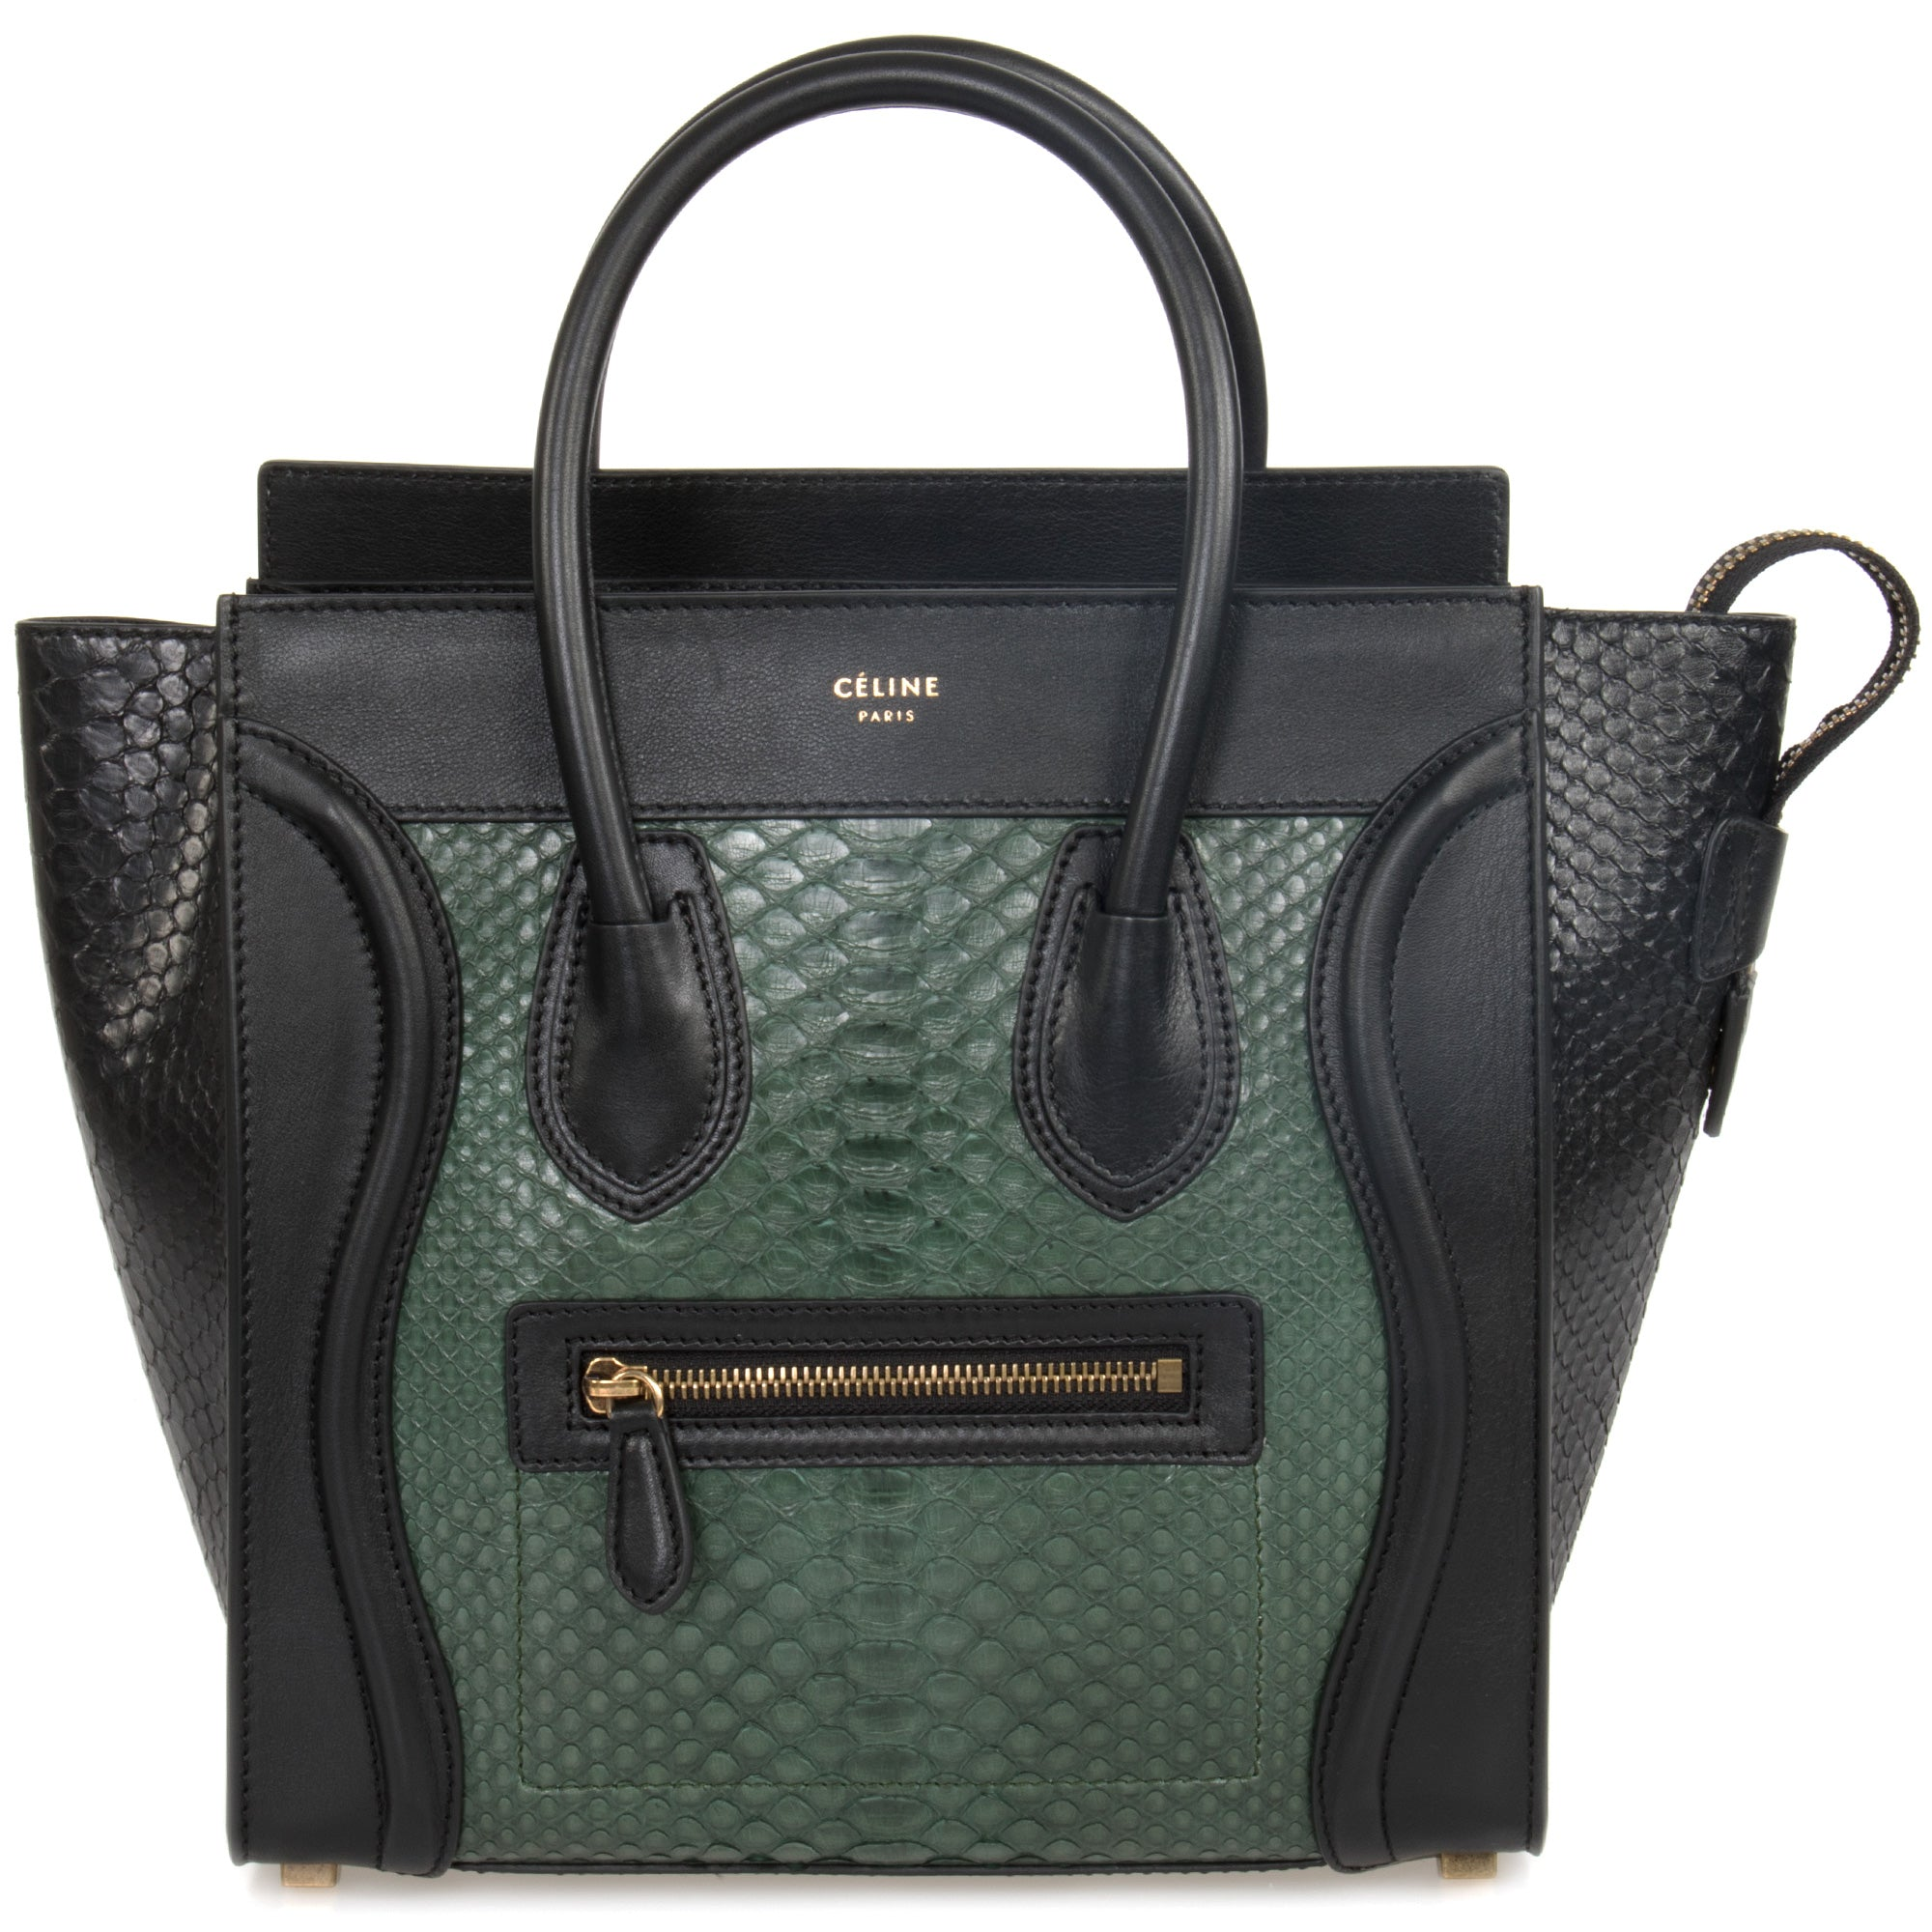 Céline Micro Emerald Green and Black Python Handbag | Black Leather